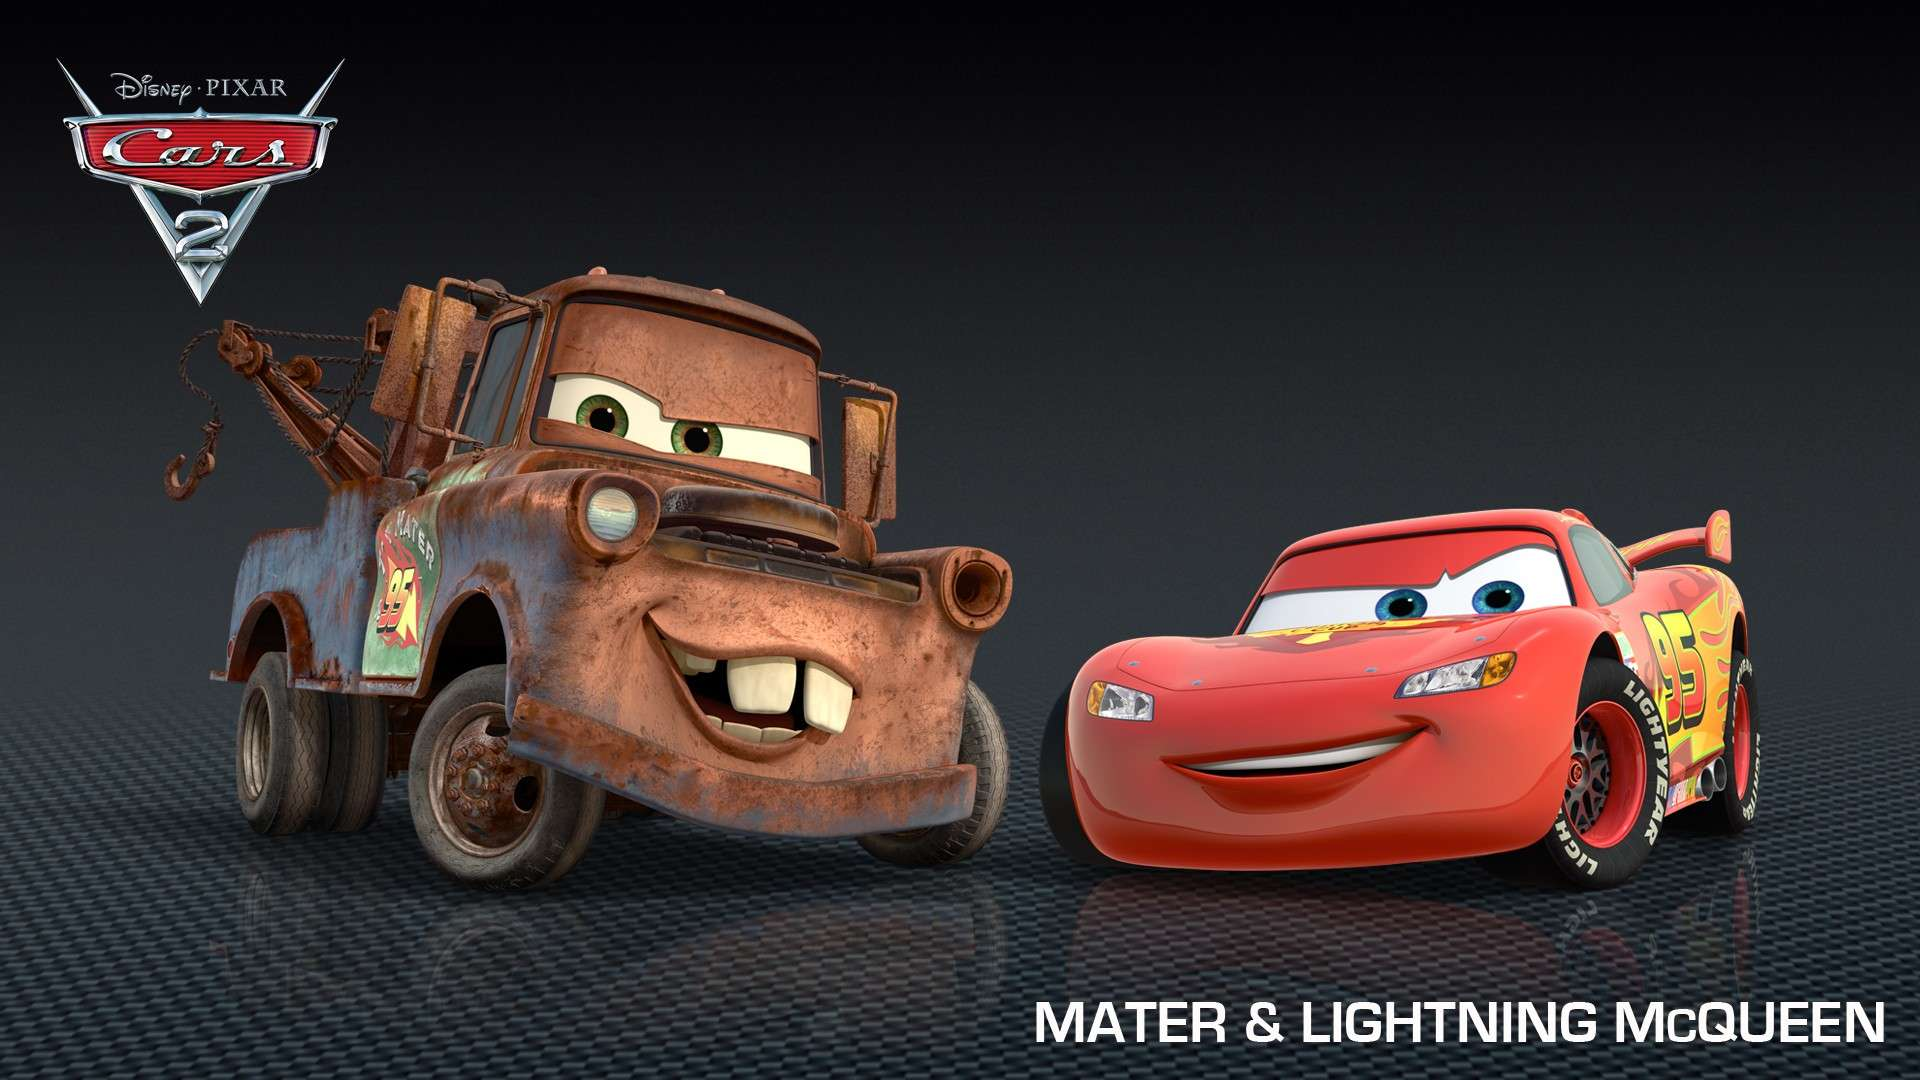 Disney pixar cars cars 2 descriptifs personnages - Mcqueen flash mcqueen ...